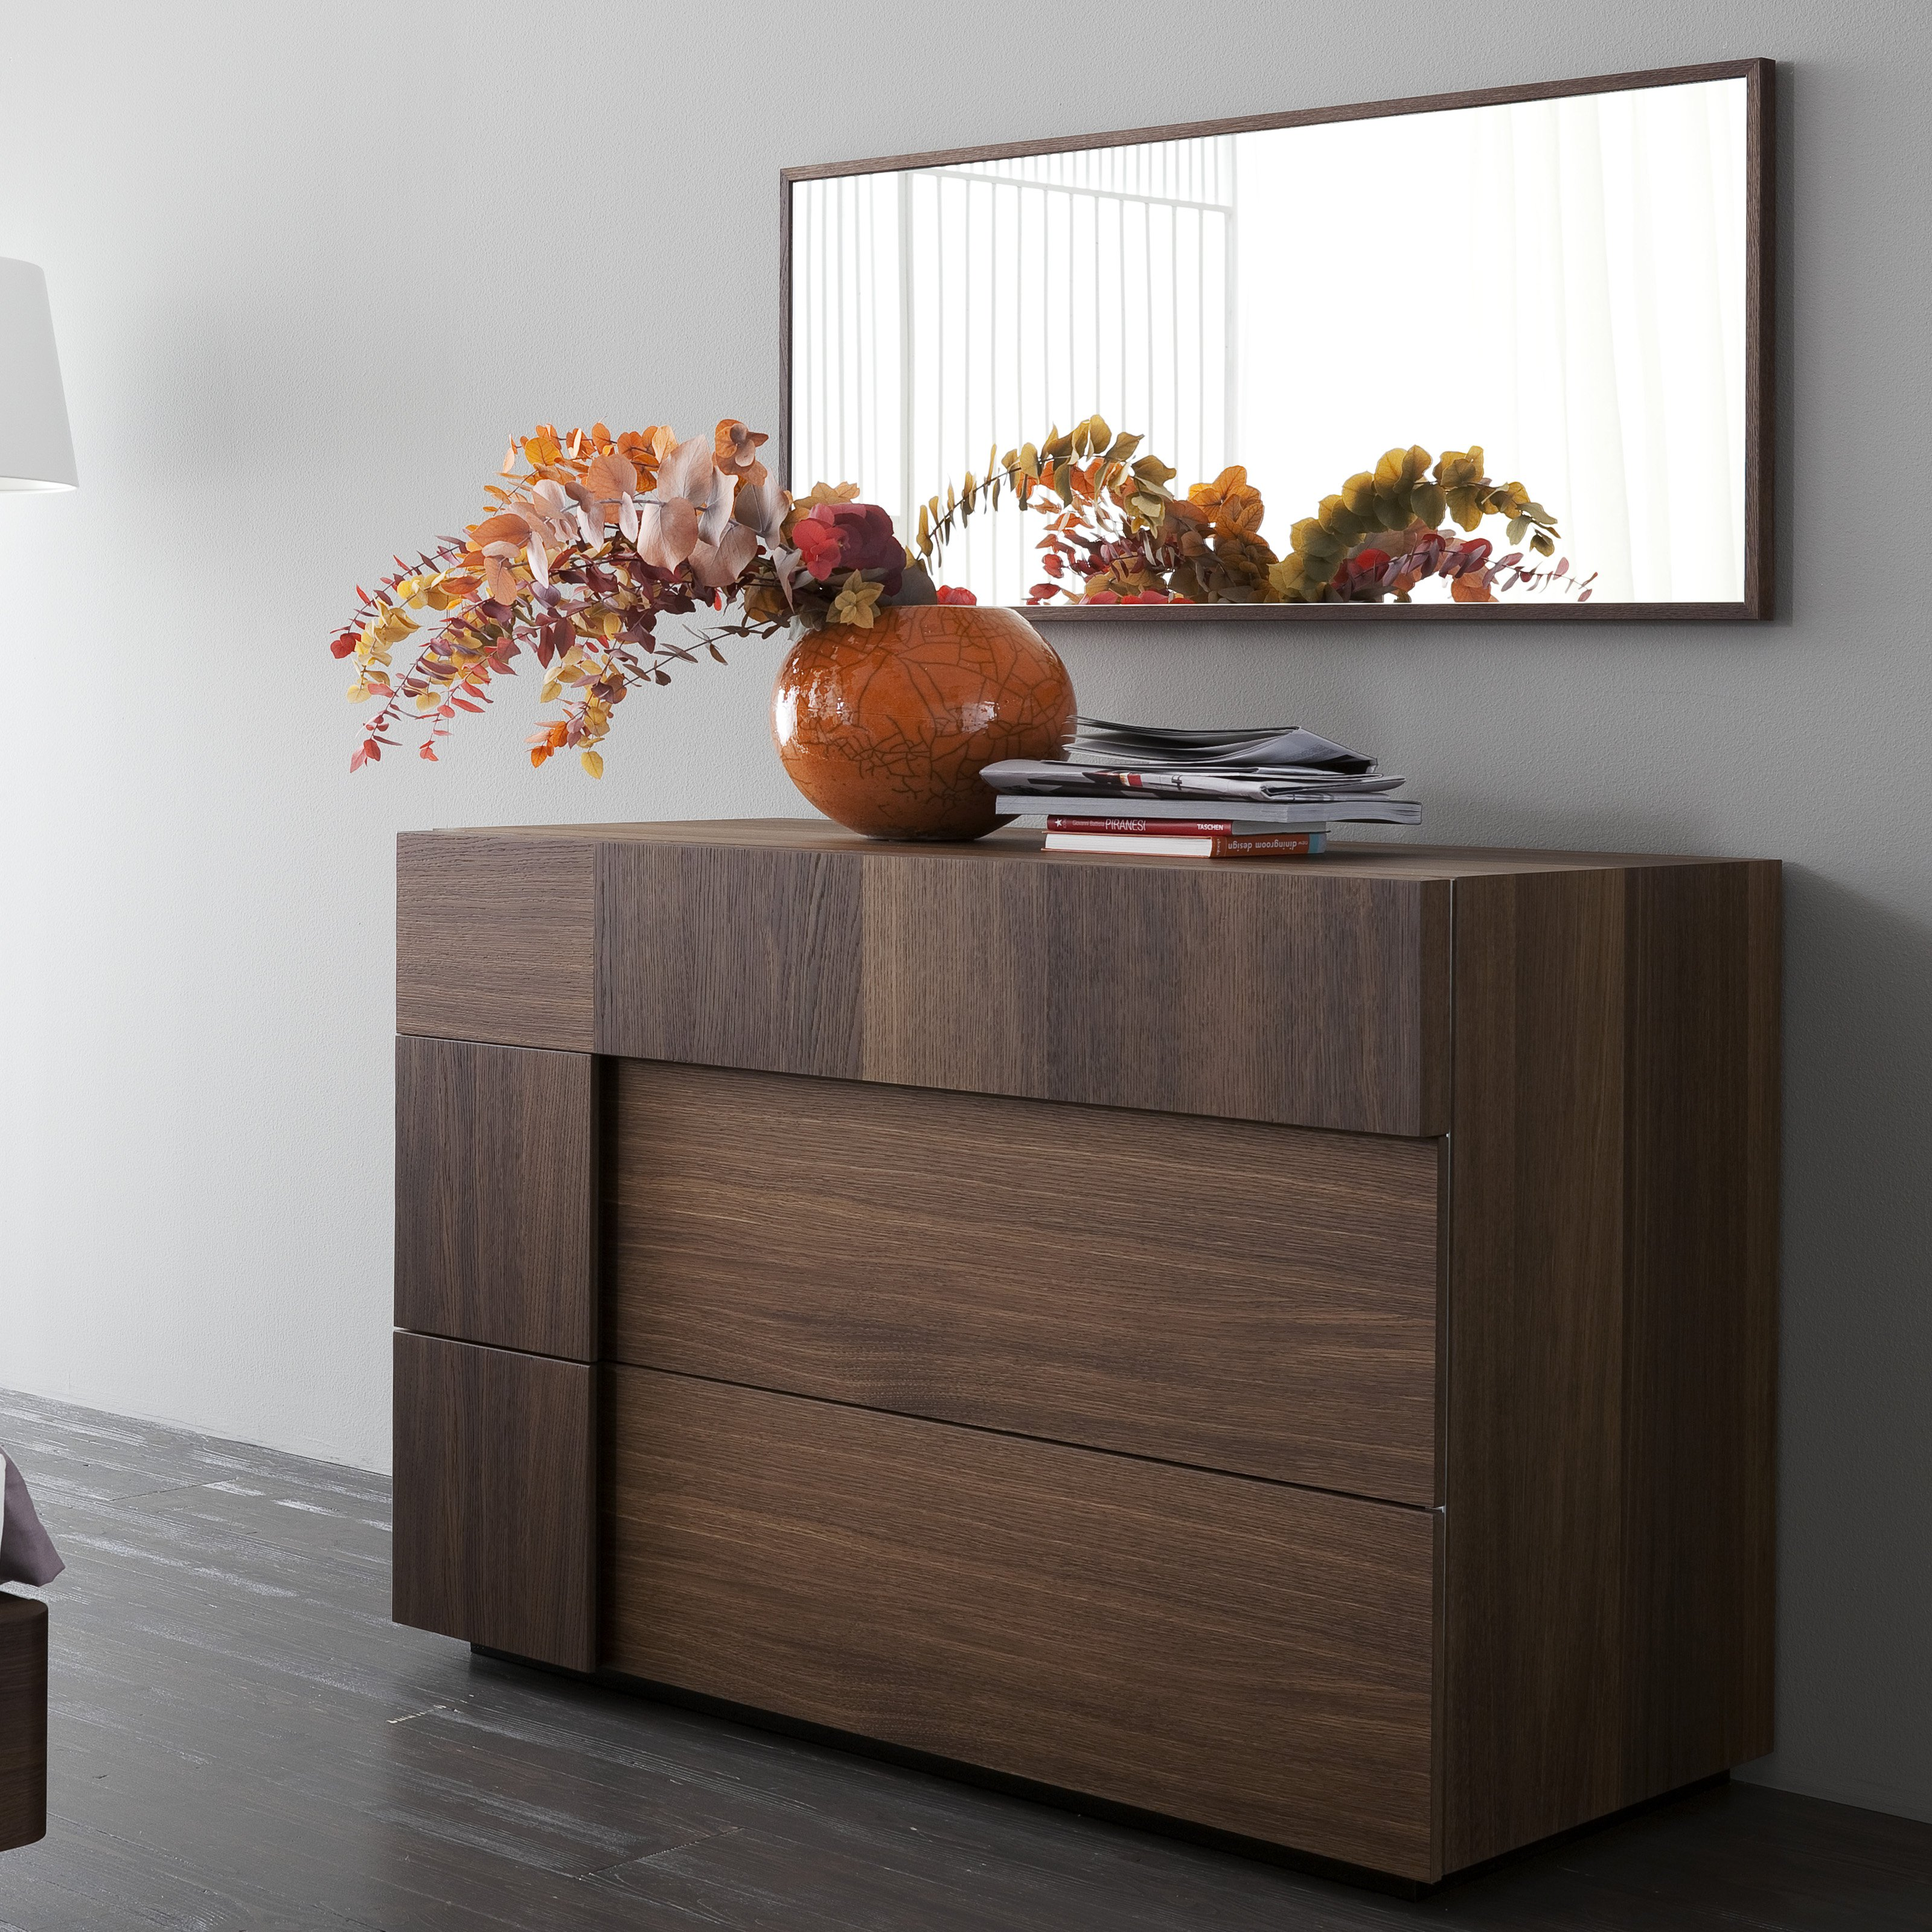 Rossetto Air 3 Drawer Dresser